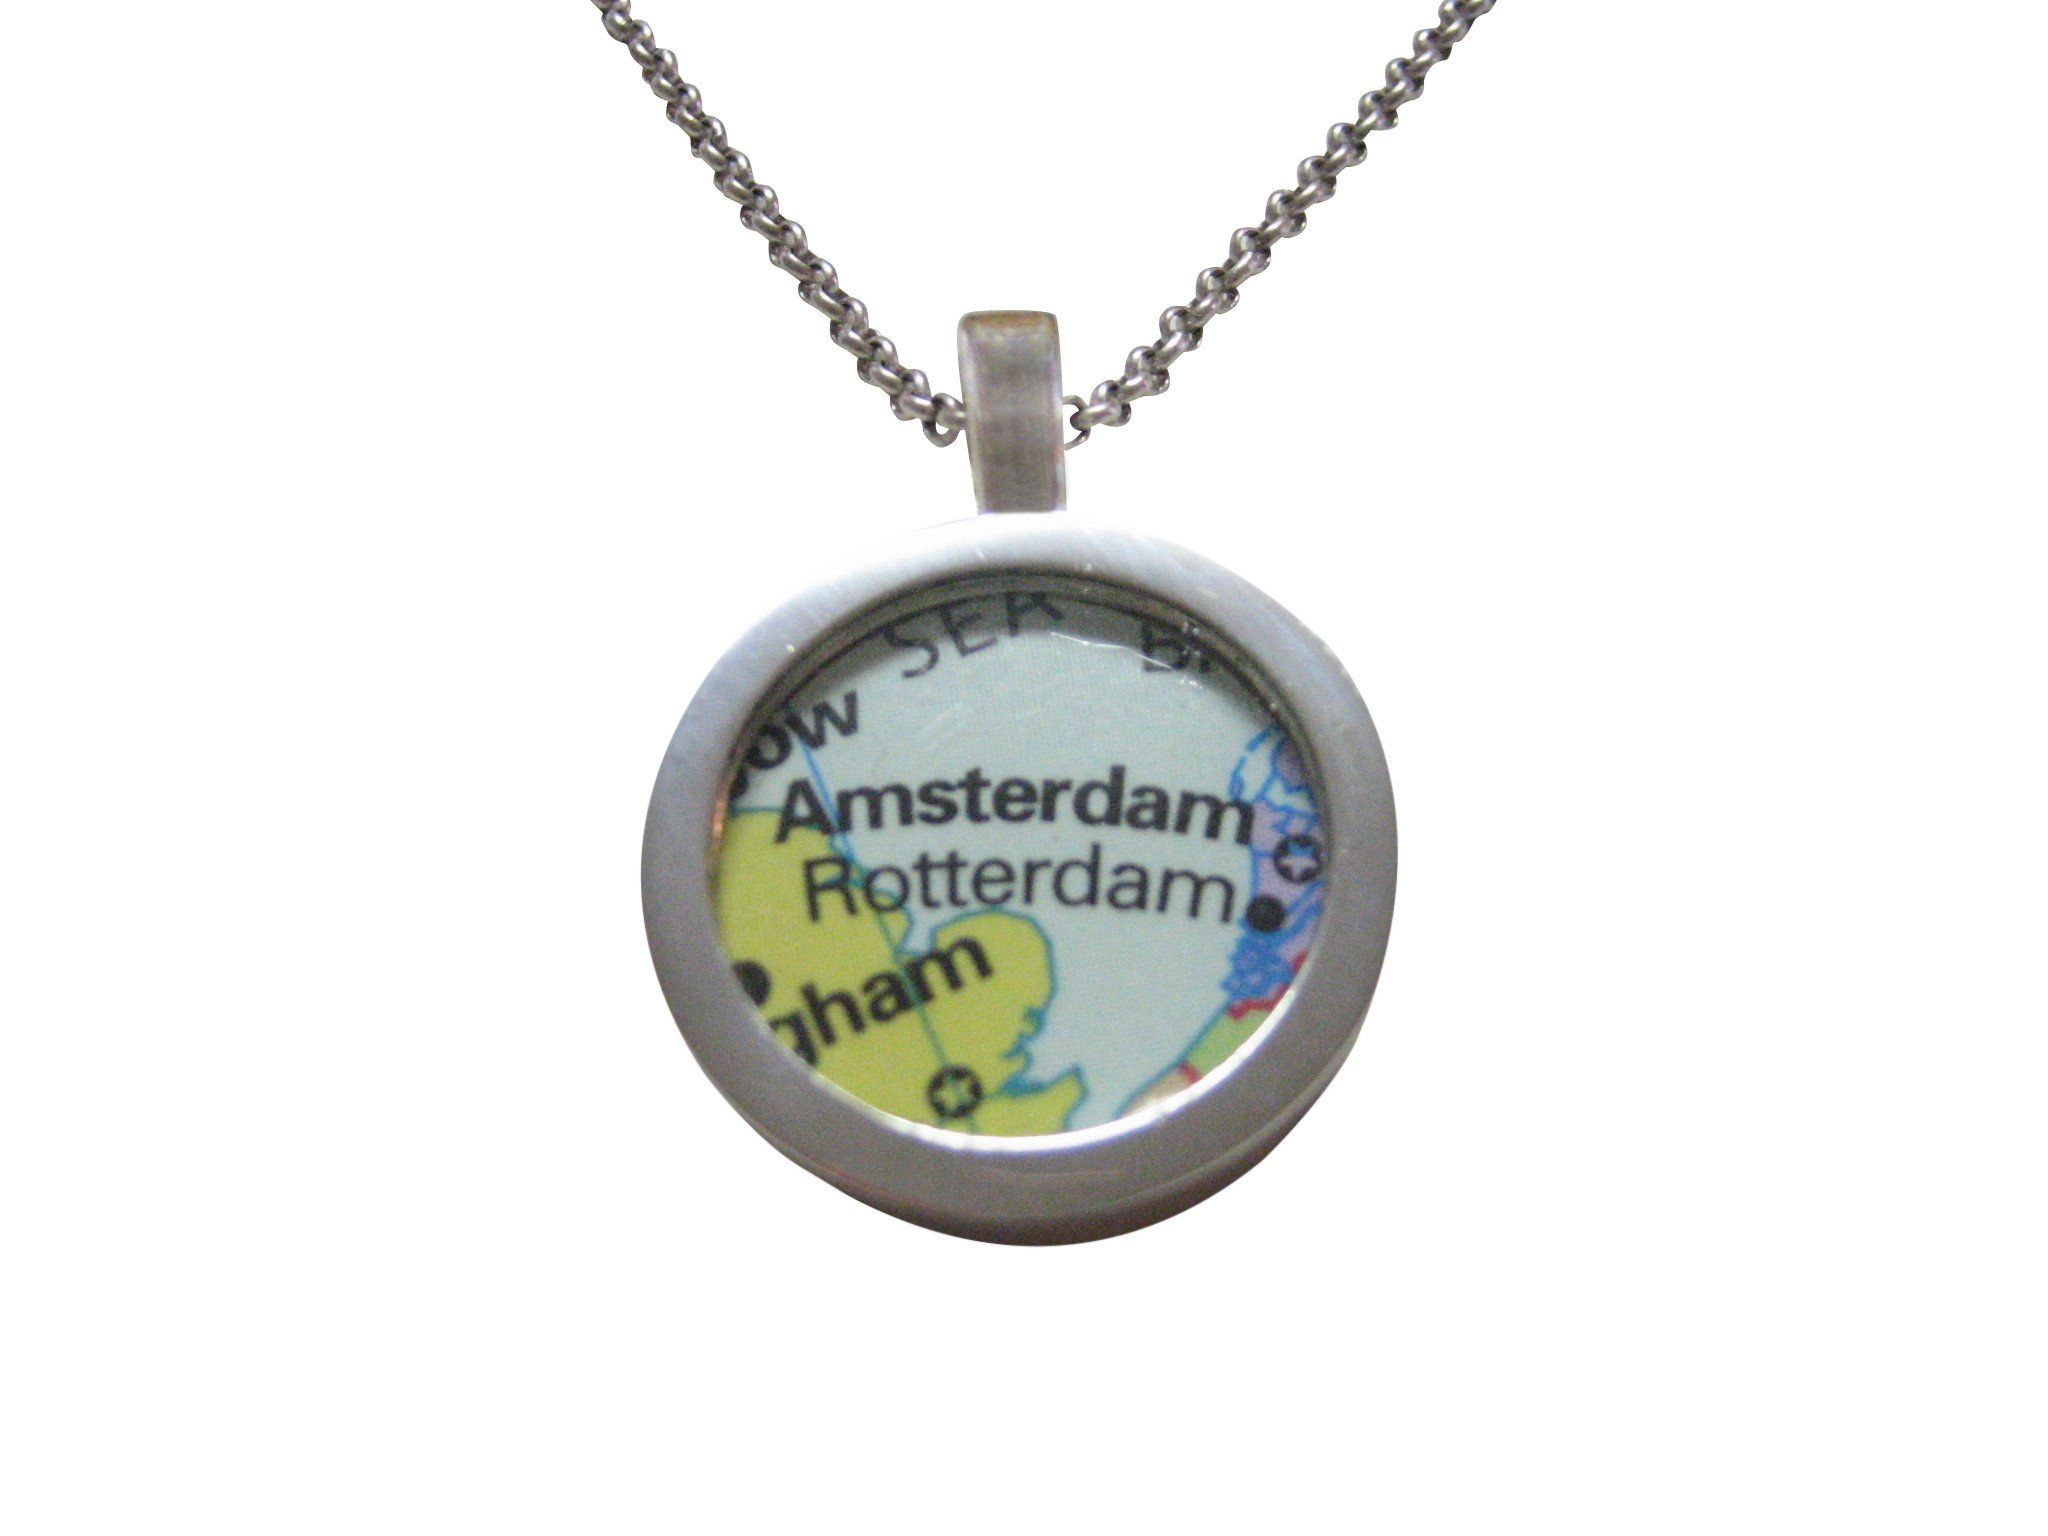 Rotterdam amsterdam map pendant necklace pinterest pendants and rotterdam amsterdam map pendant necklace gumiabroncs Image collections